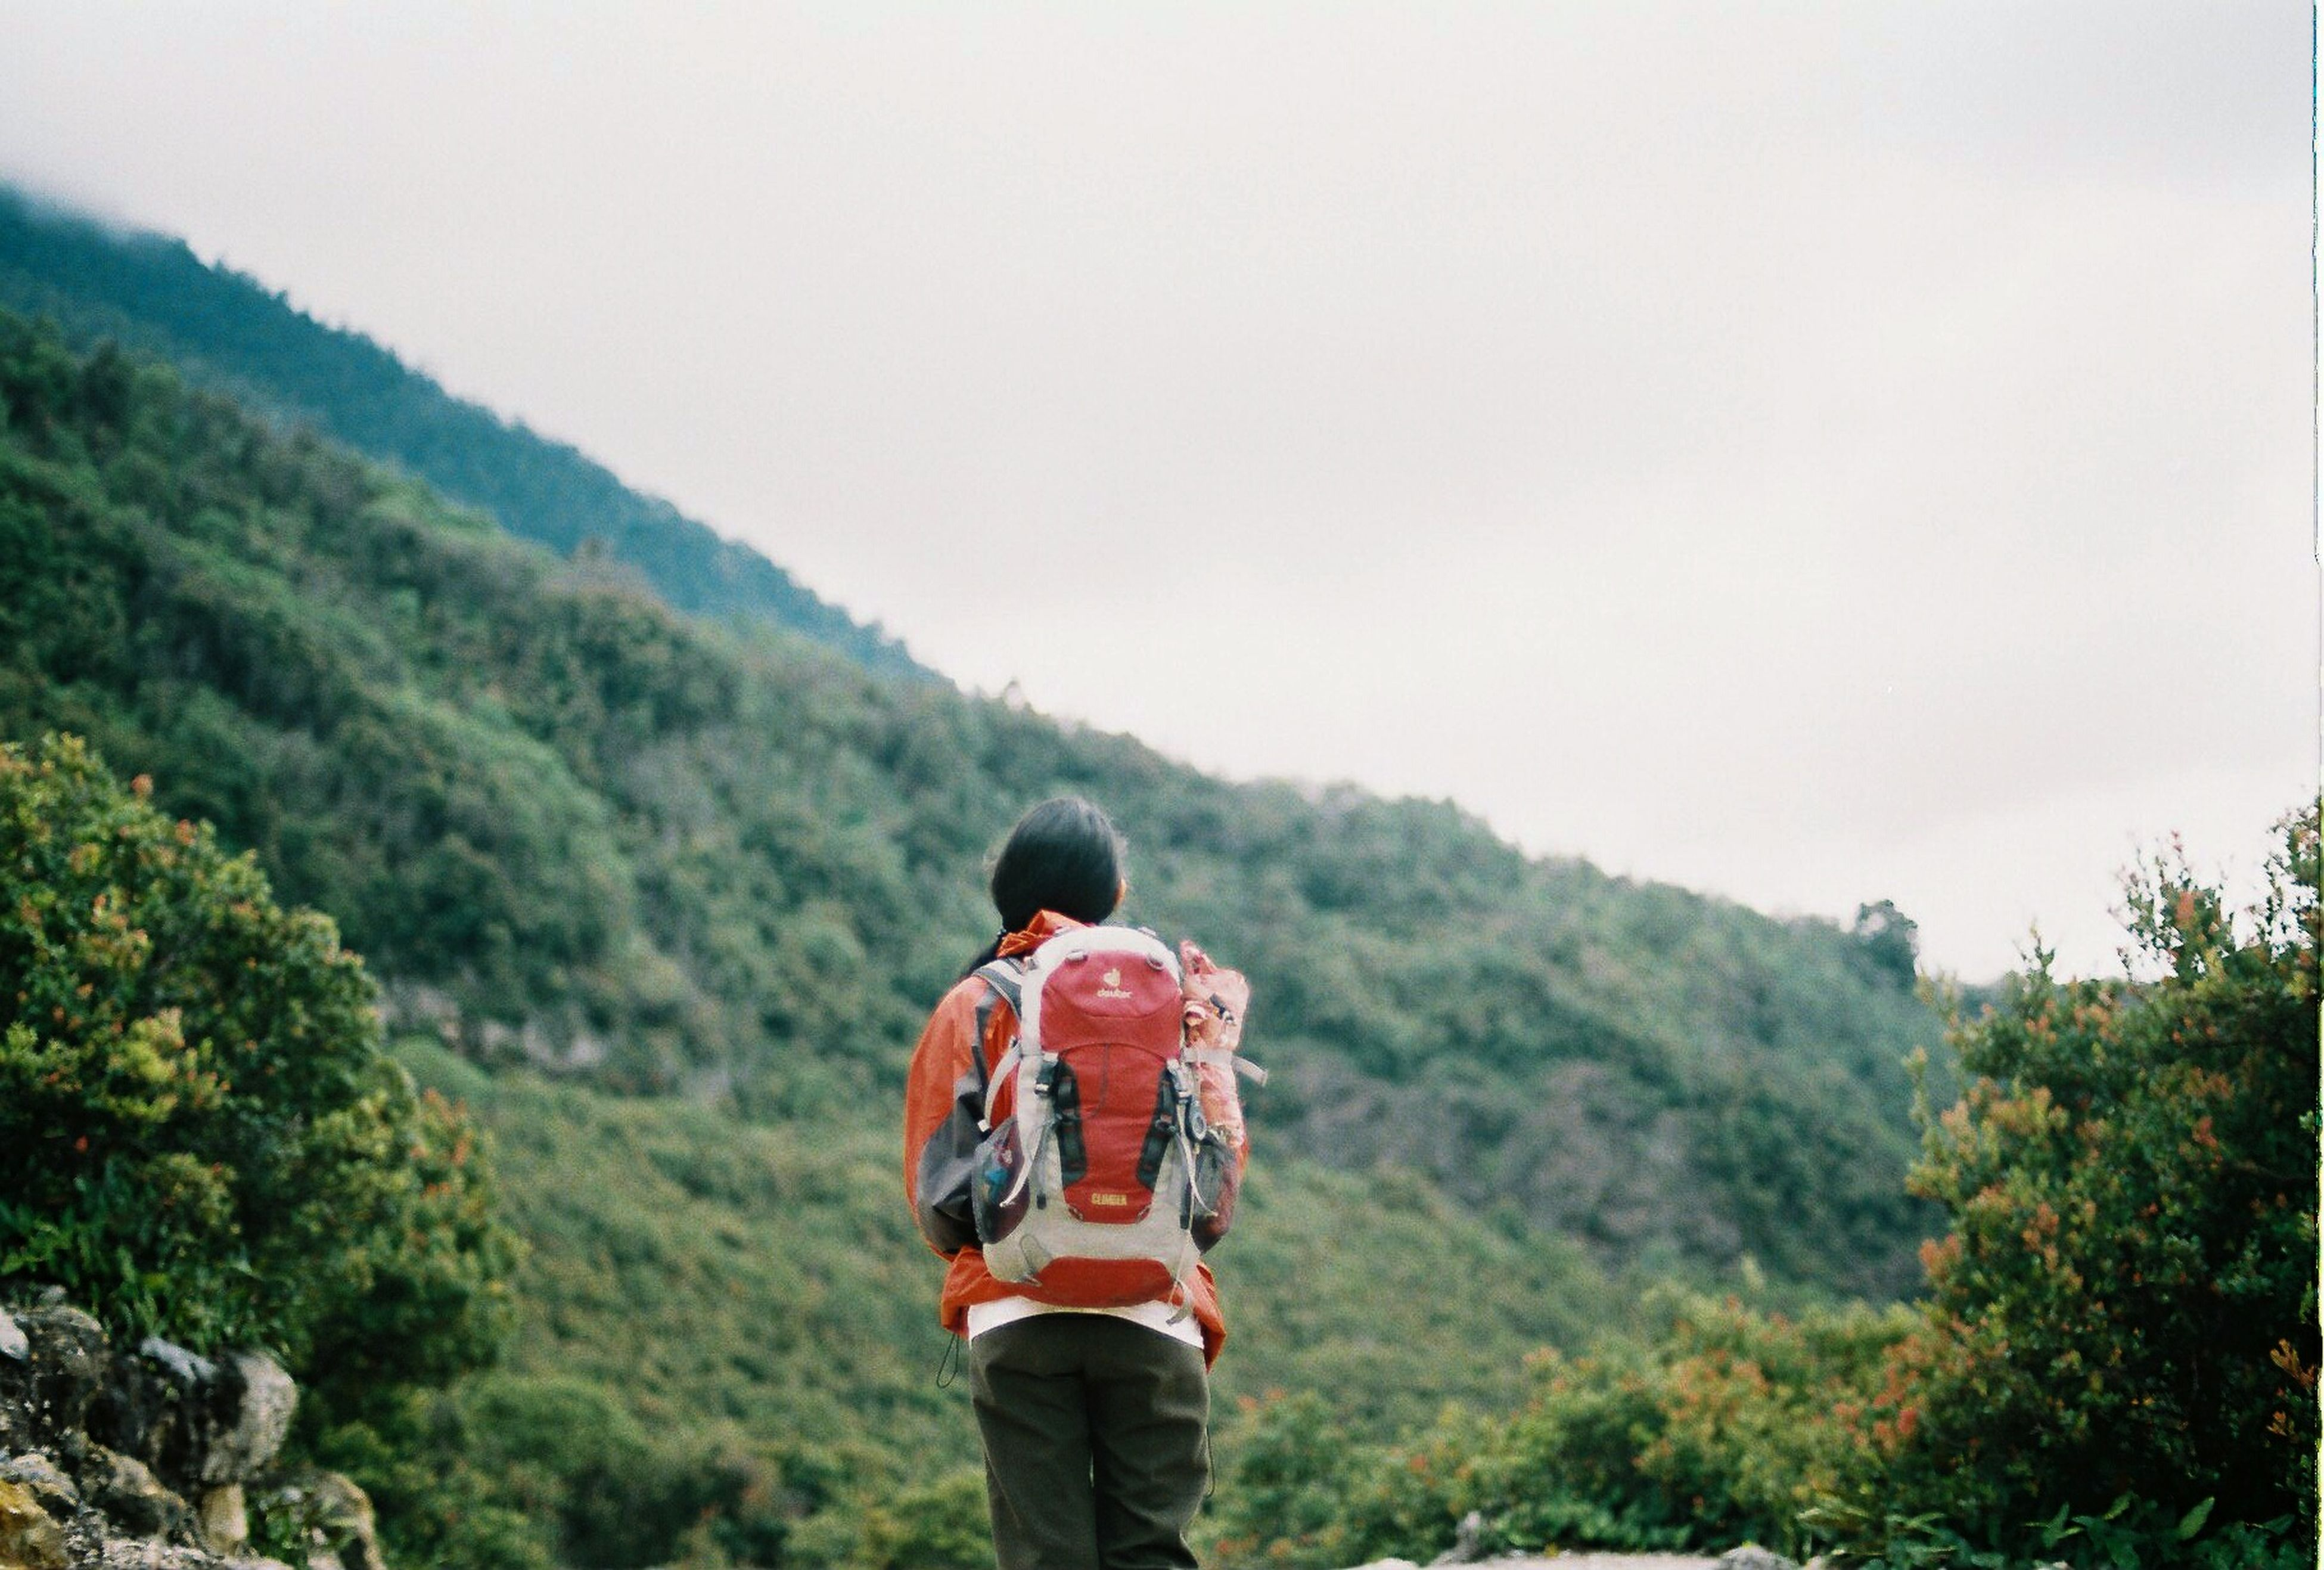 rear view, backpack, real people, tree, walking, adventure, nature, mountain, one person, hiking, casual clothing, leisure activity, day, landscape, beauty in nature, outdoors, clear sky, sky, scenics, men, young adult, people